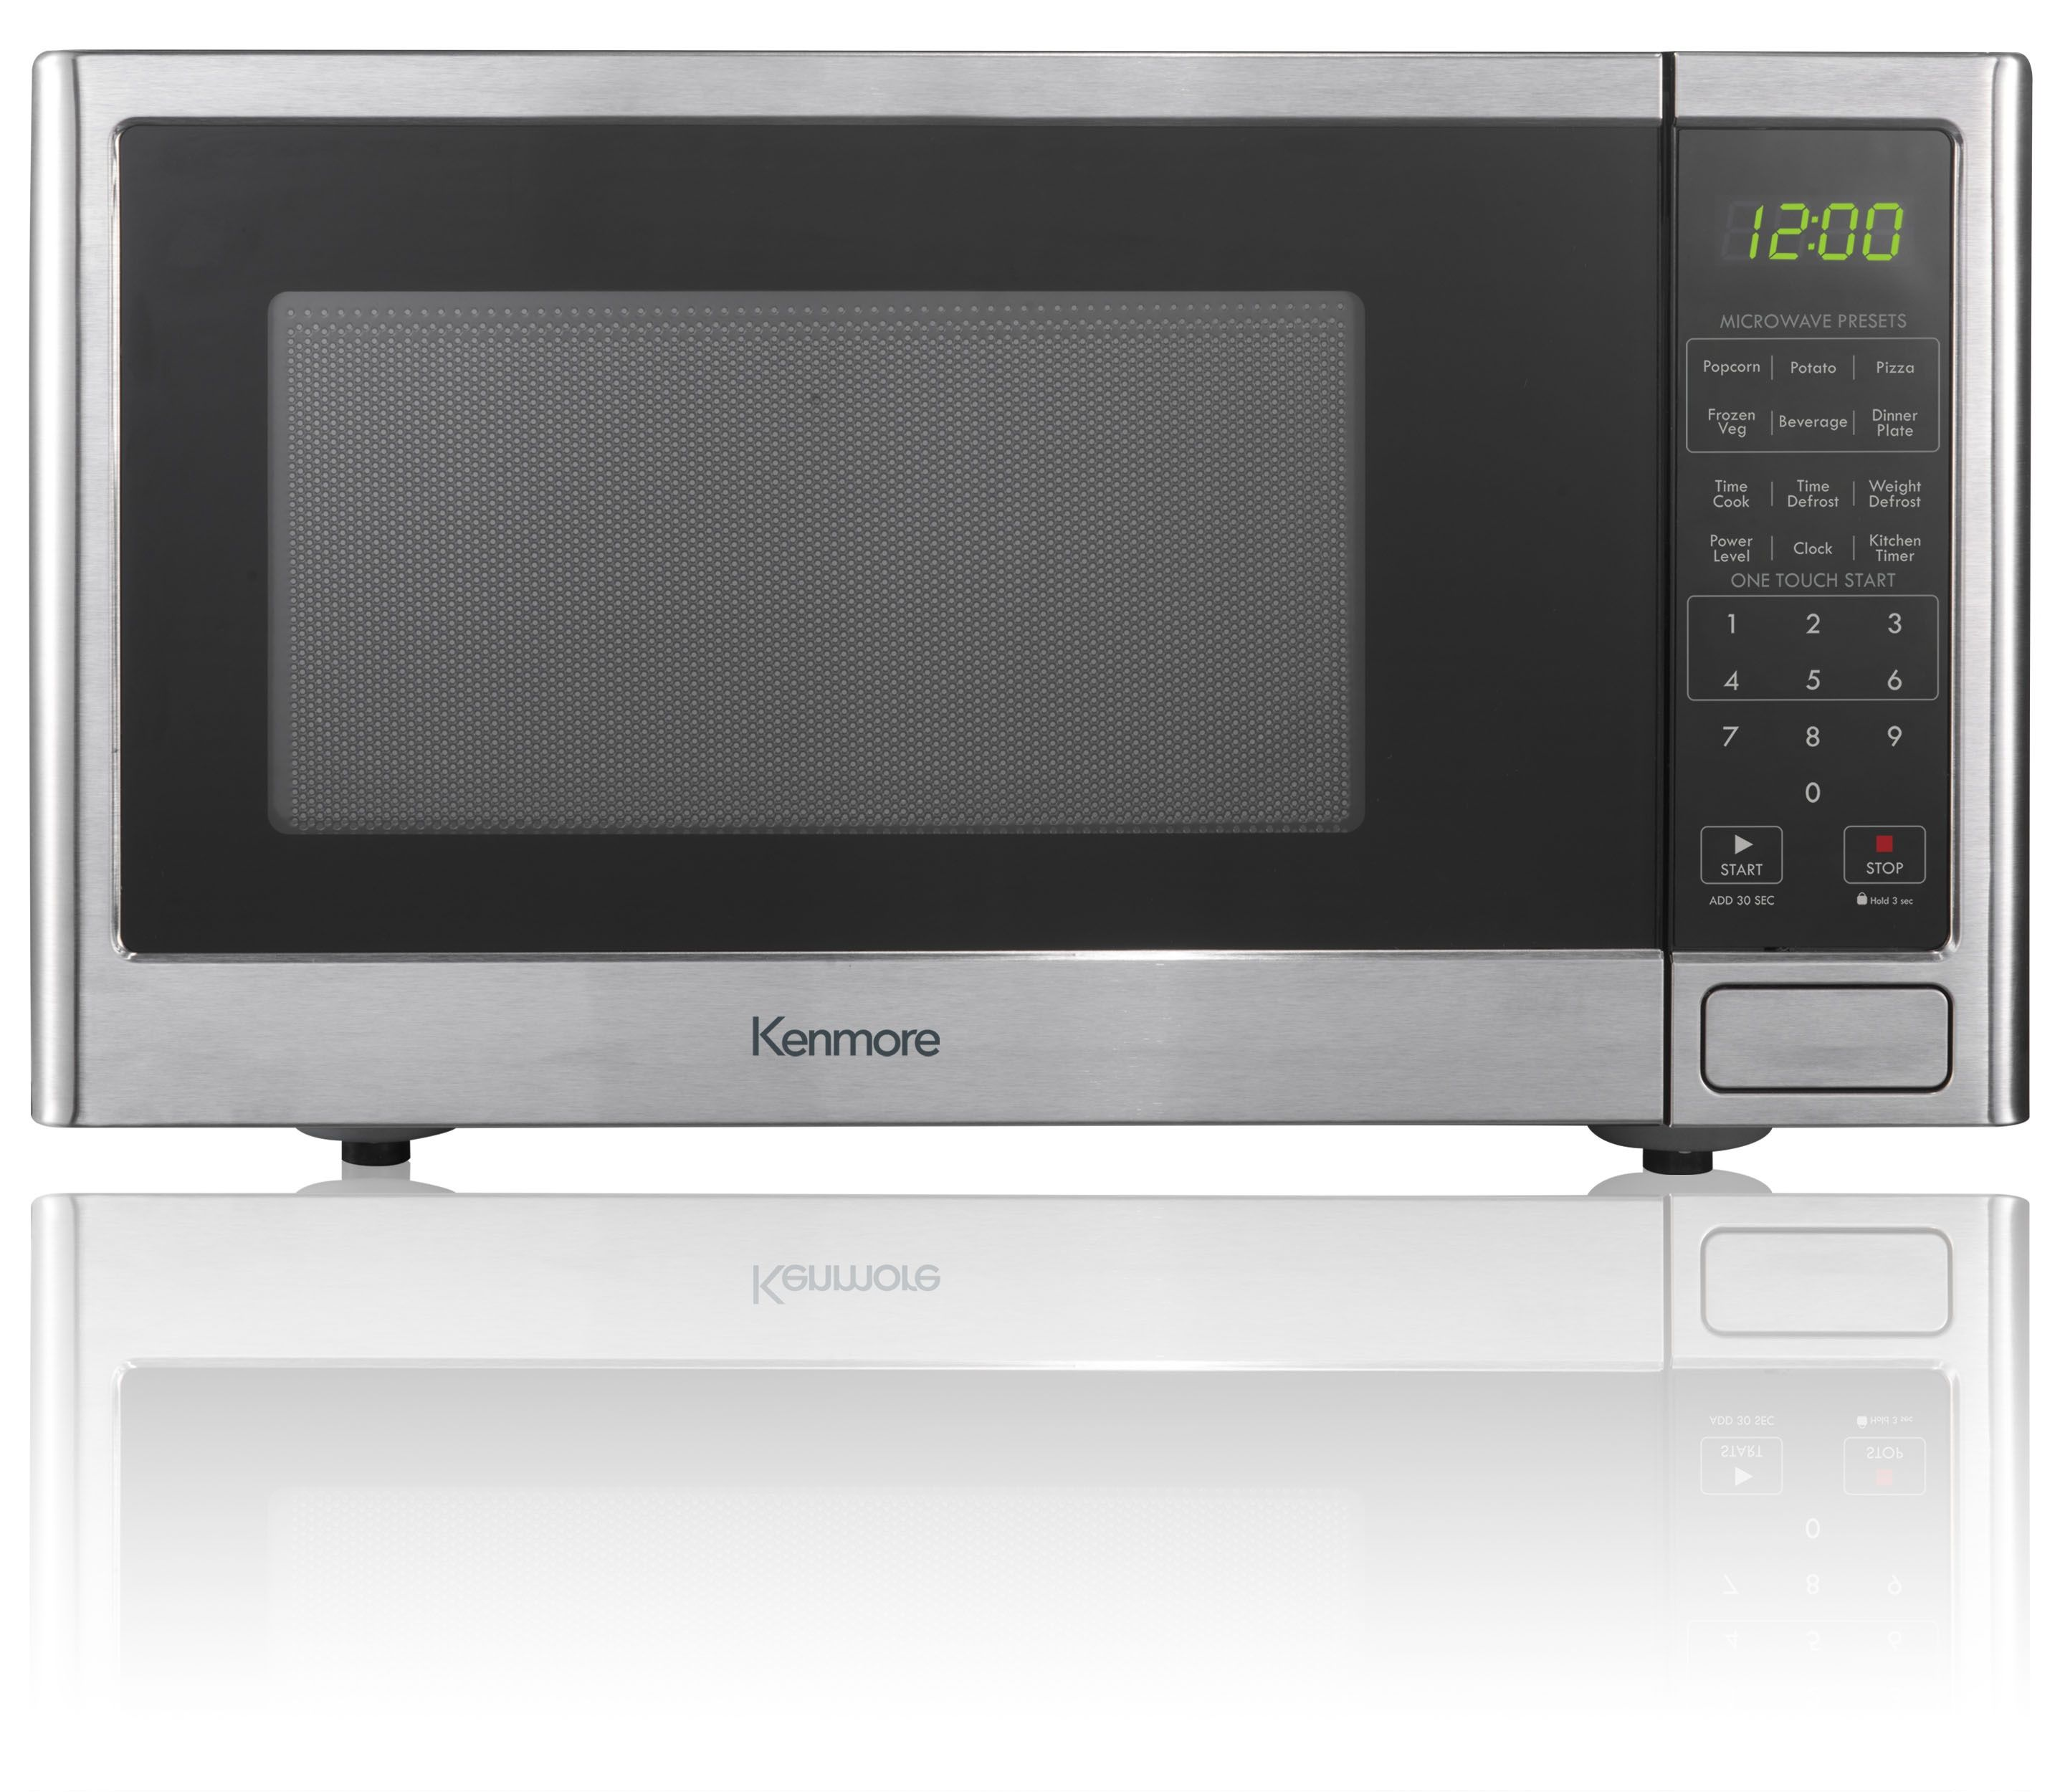 Give Your Family The Convenience Of Countertop Cooking With The Kenmore 7377 Stainless Steel Oven Countertop Microwave Oven Best Countertop Microwave